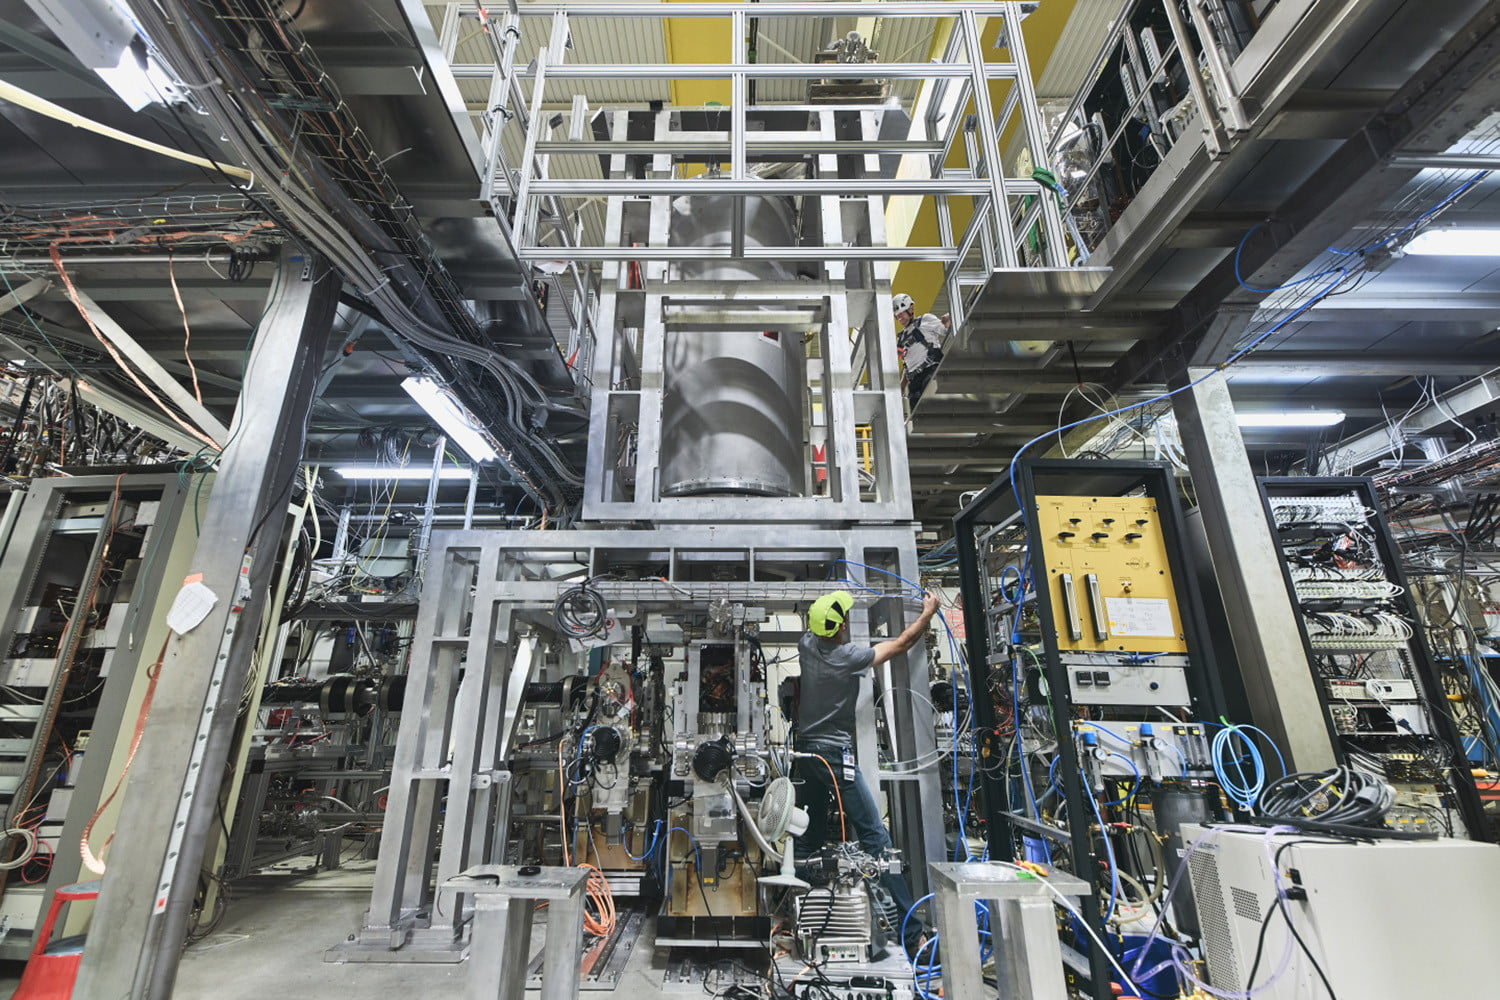 New CERN experiments probe puzzling questions about antimatter